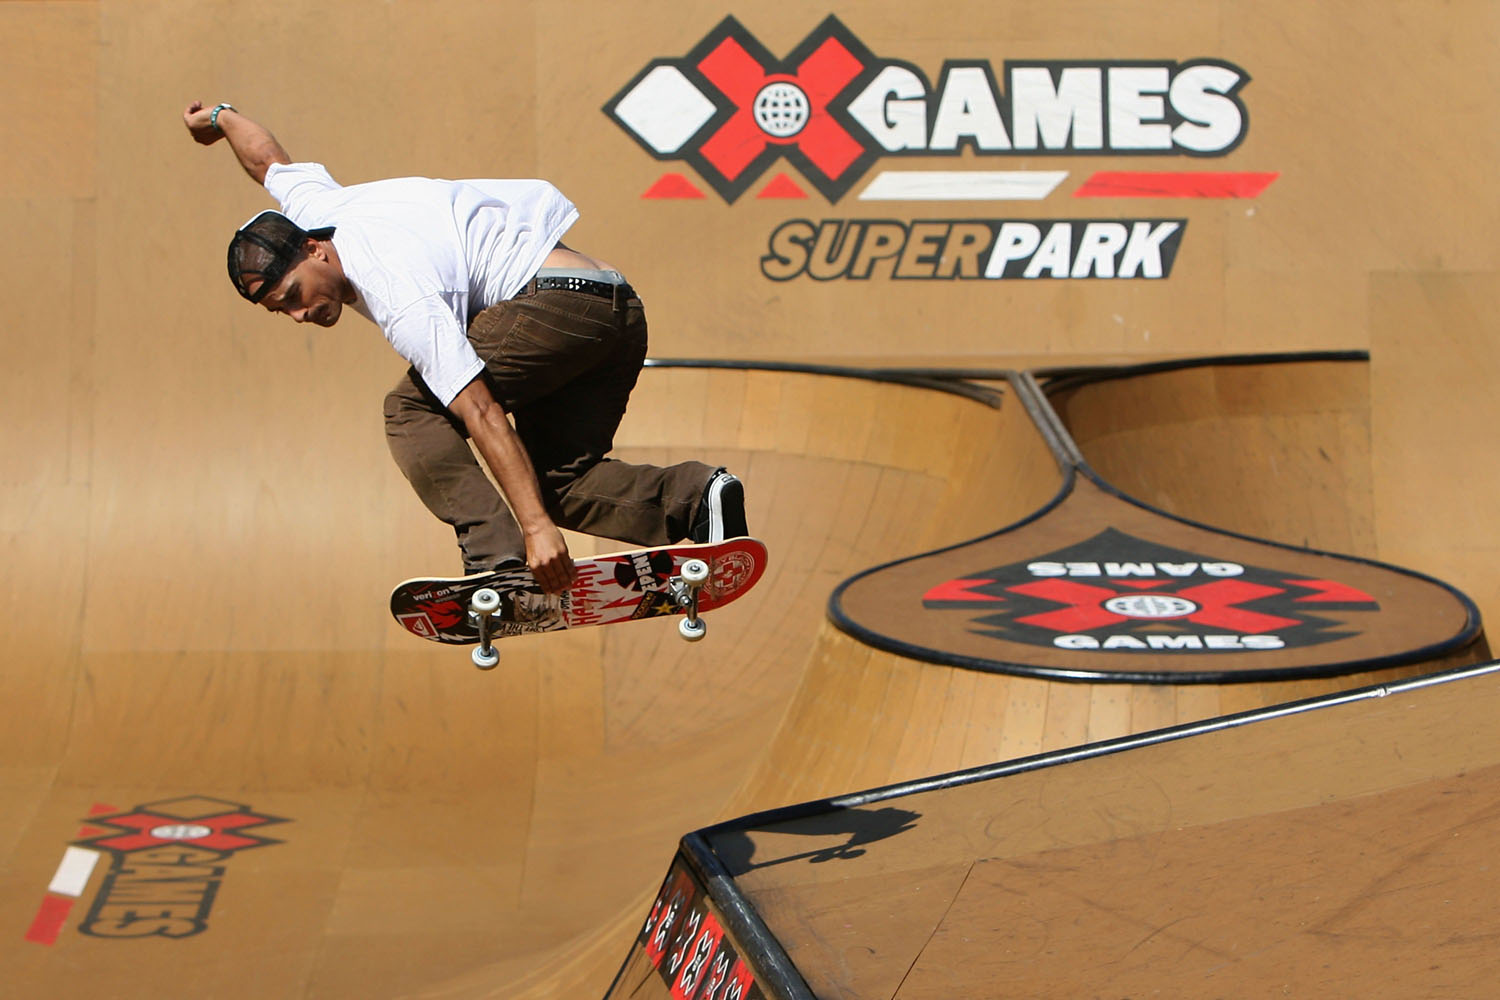 Omar Hassan practices in the Skateboard Superpark during X Games 14 at Home Depot Center on July 31, 2008 in Carson, California.